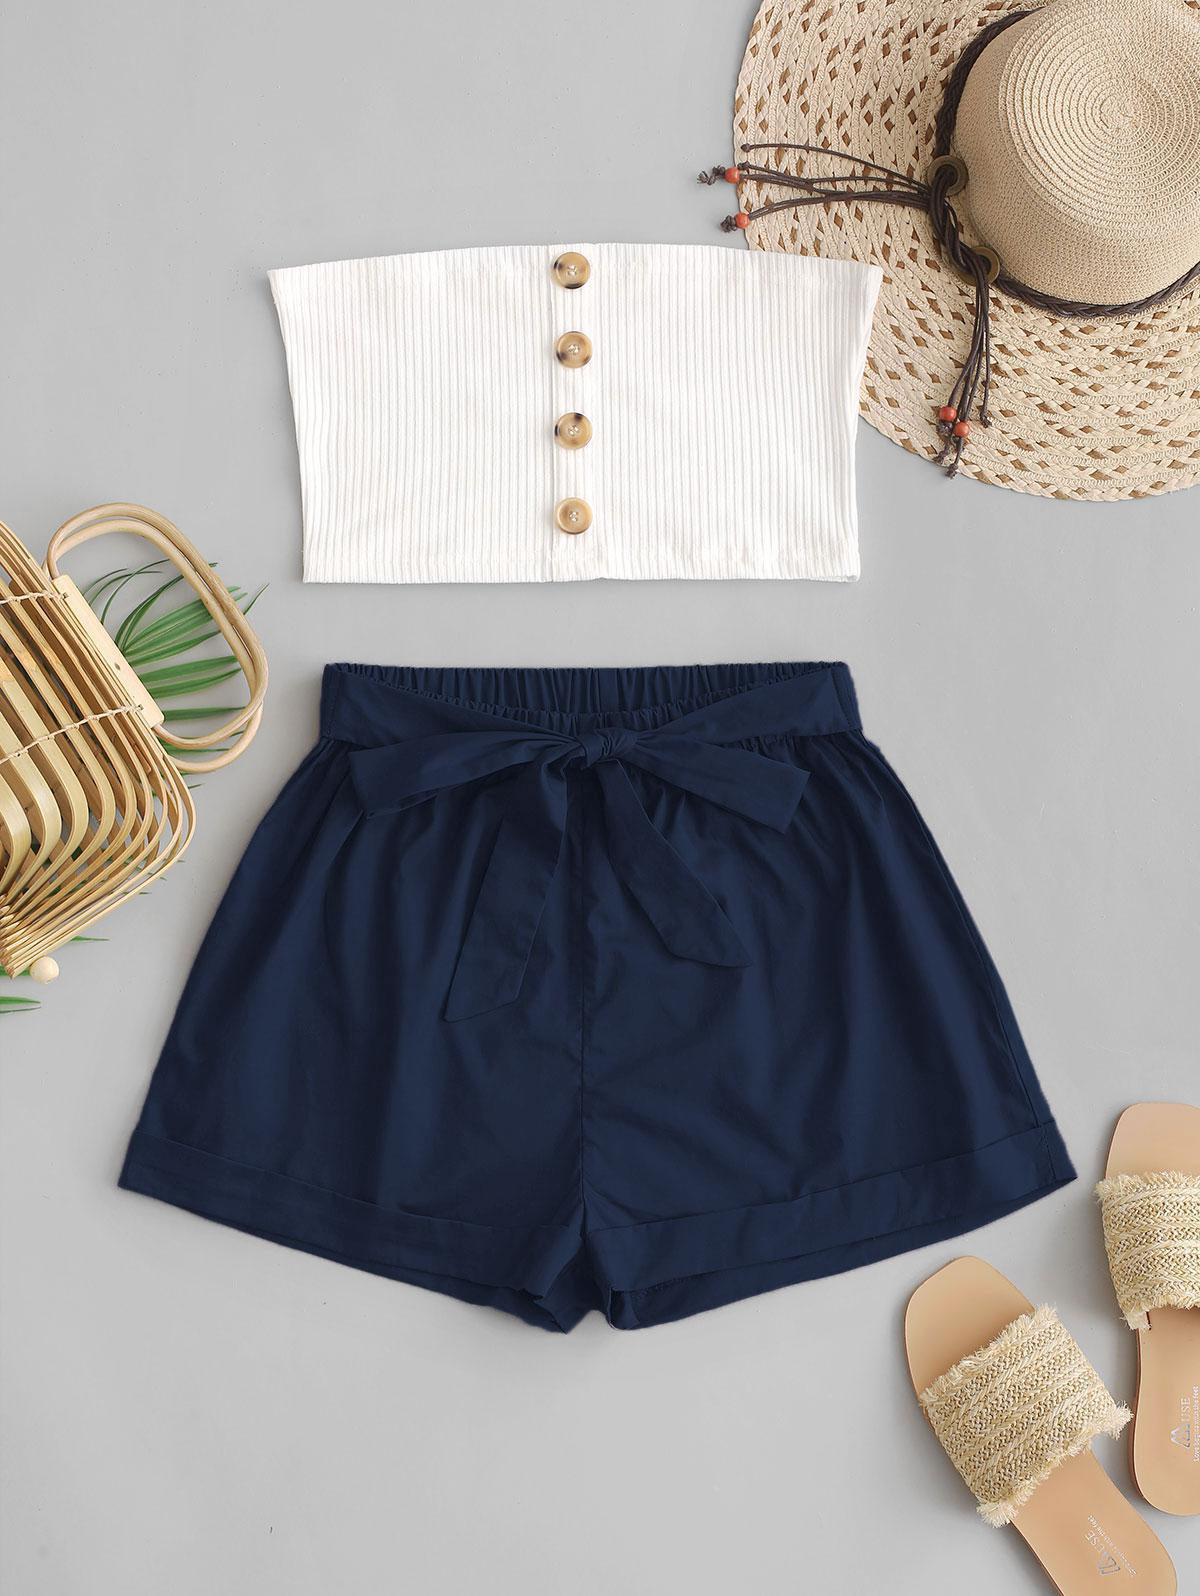 ZAFUL Two Piece Buttoned Ribbed Bandeau Top Set thumbnail